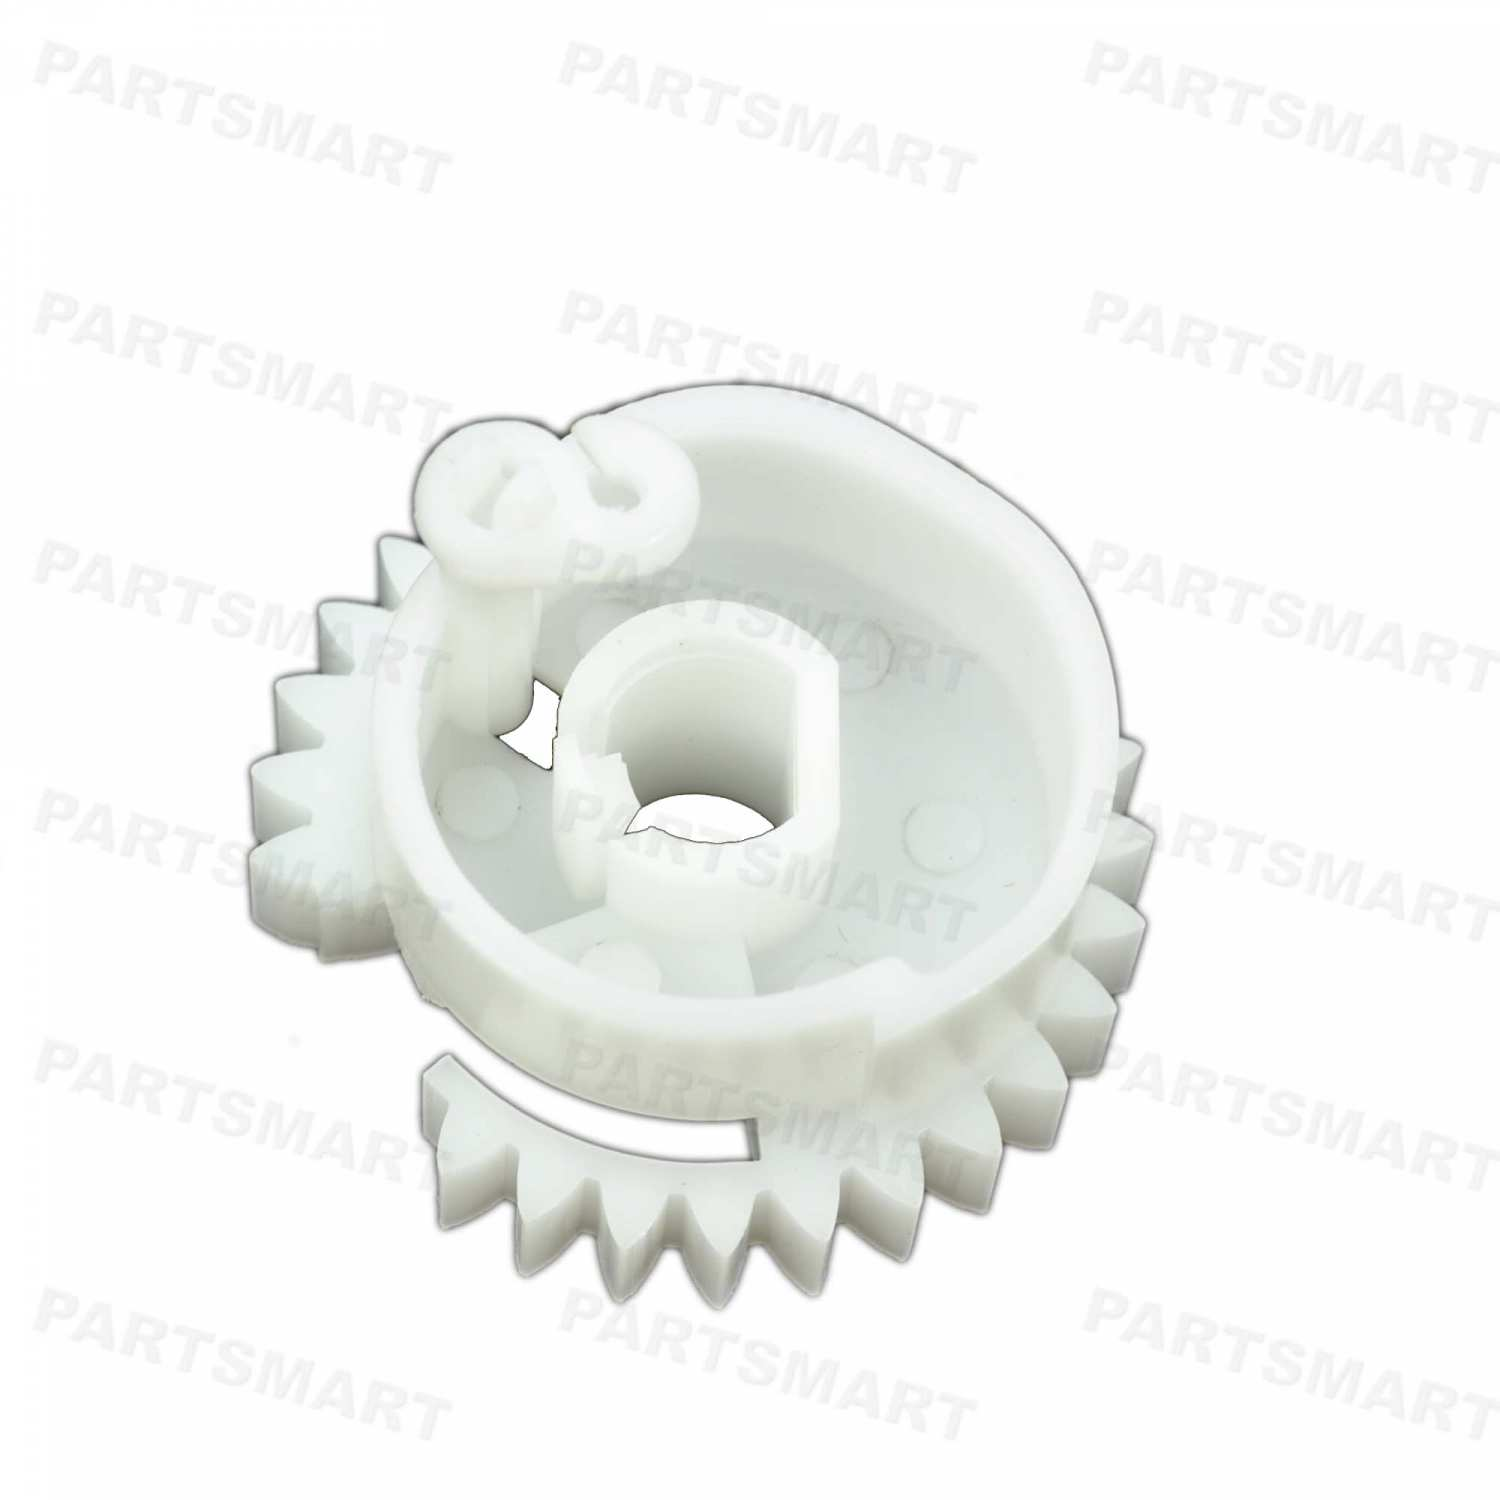 RS6-0444-000 Gear (26T) for HP LaserJet 2100, LaserJet 2200